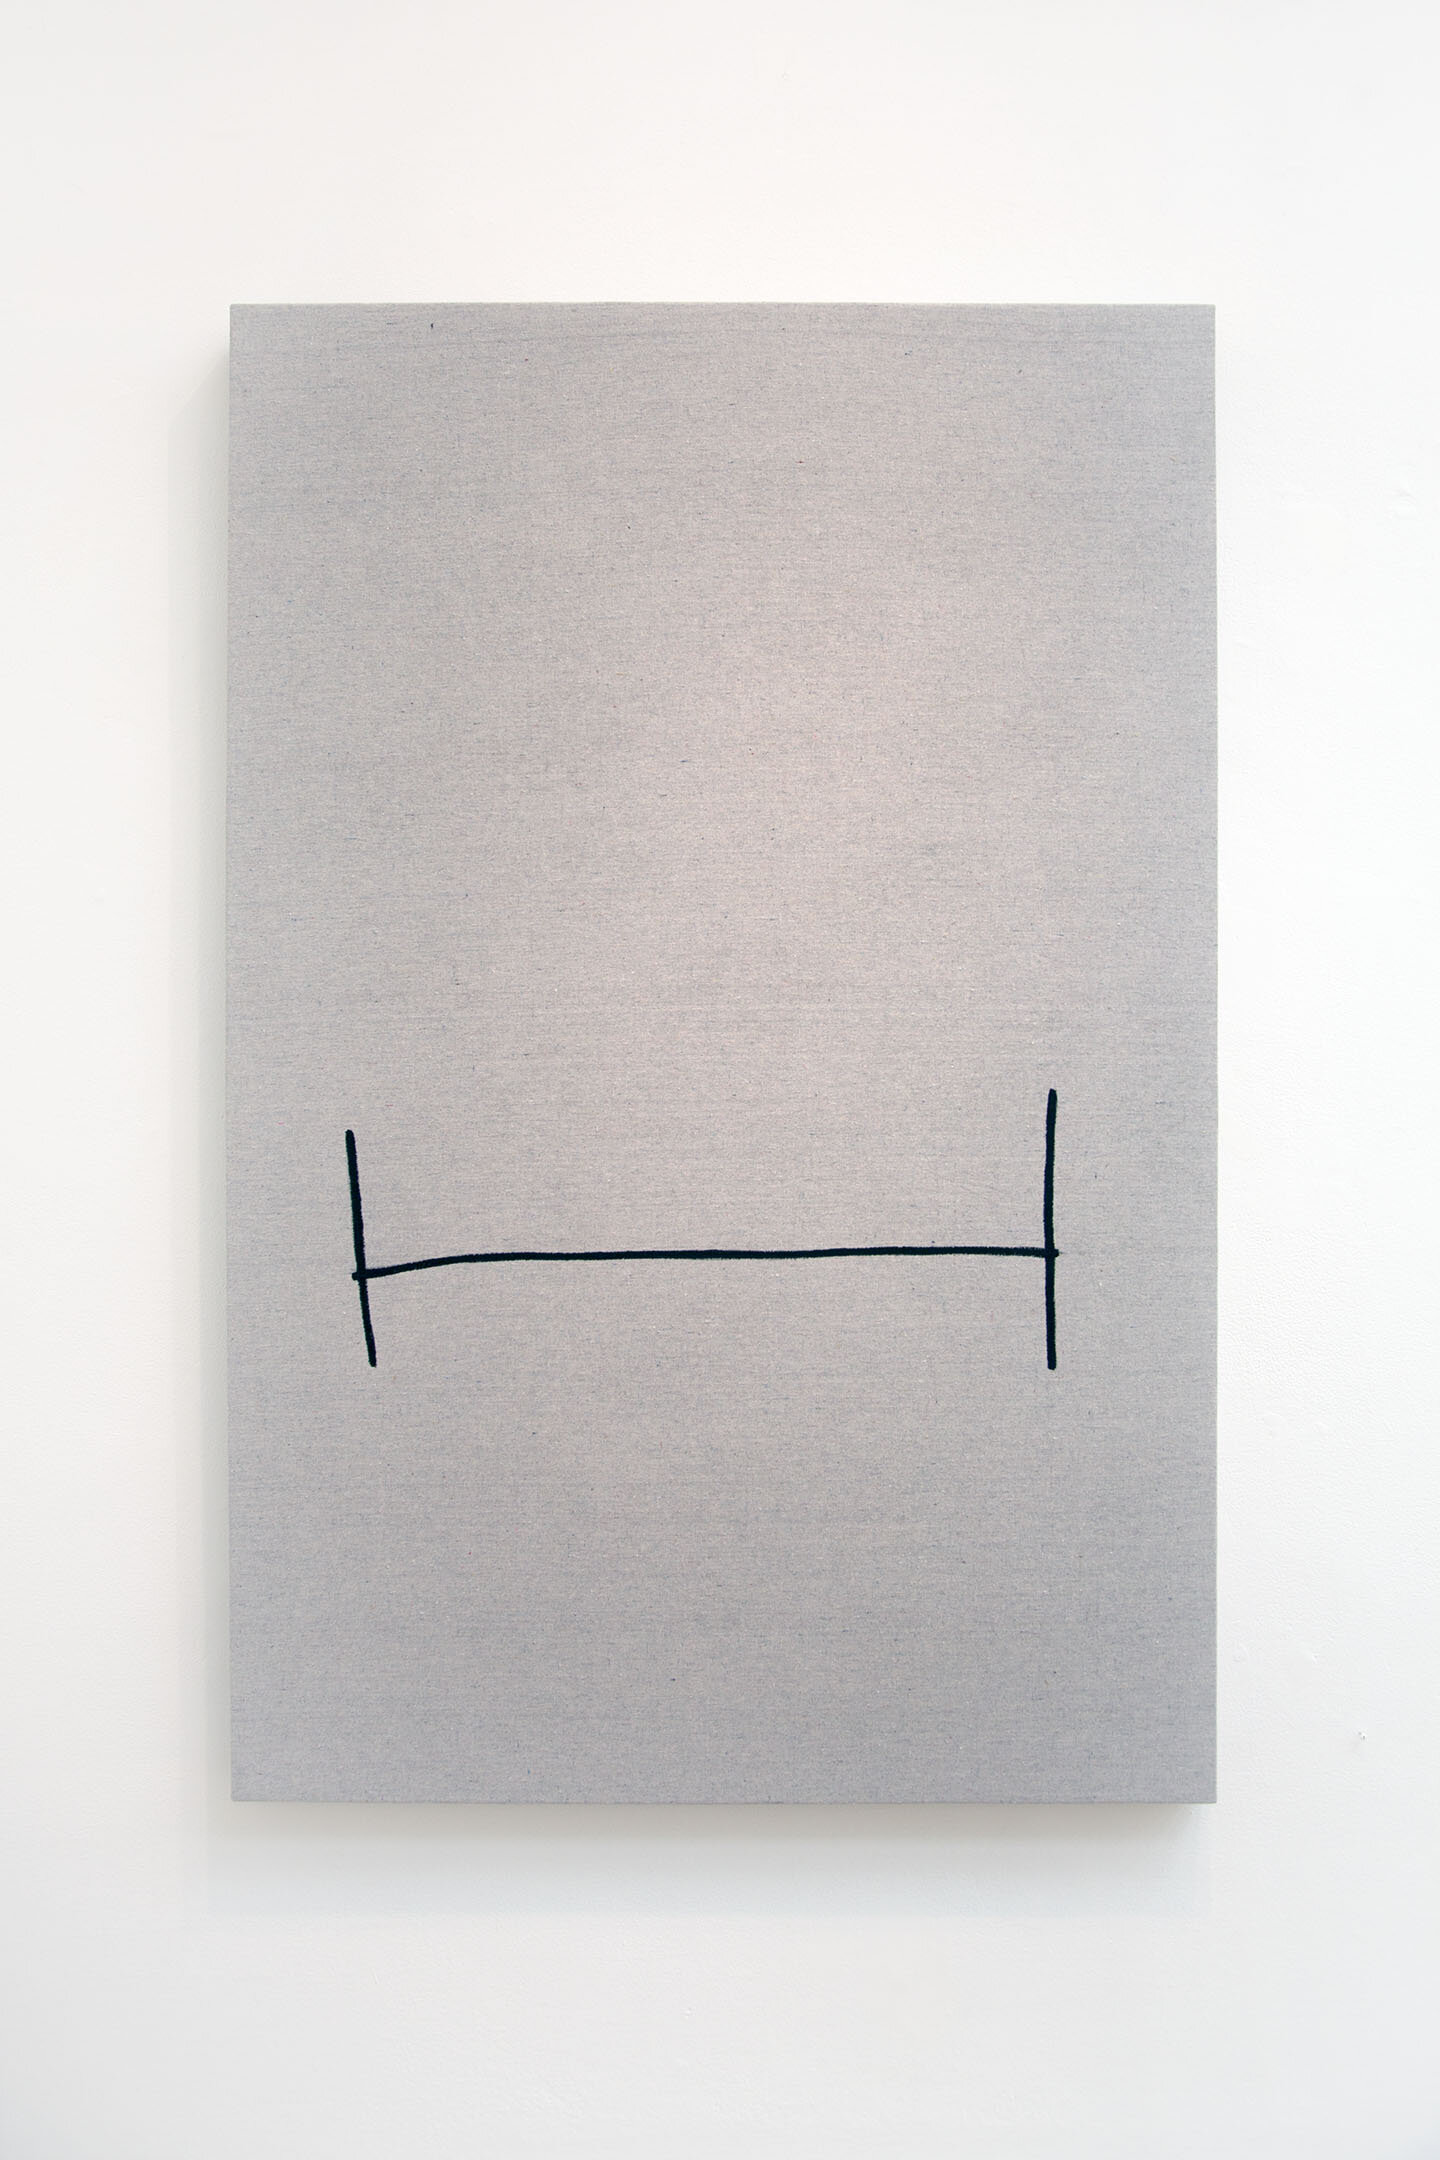 H (Sideways I) , 2019, latex on canvas over panel, 48 x 32 inches.